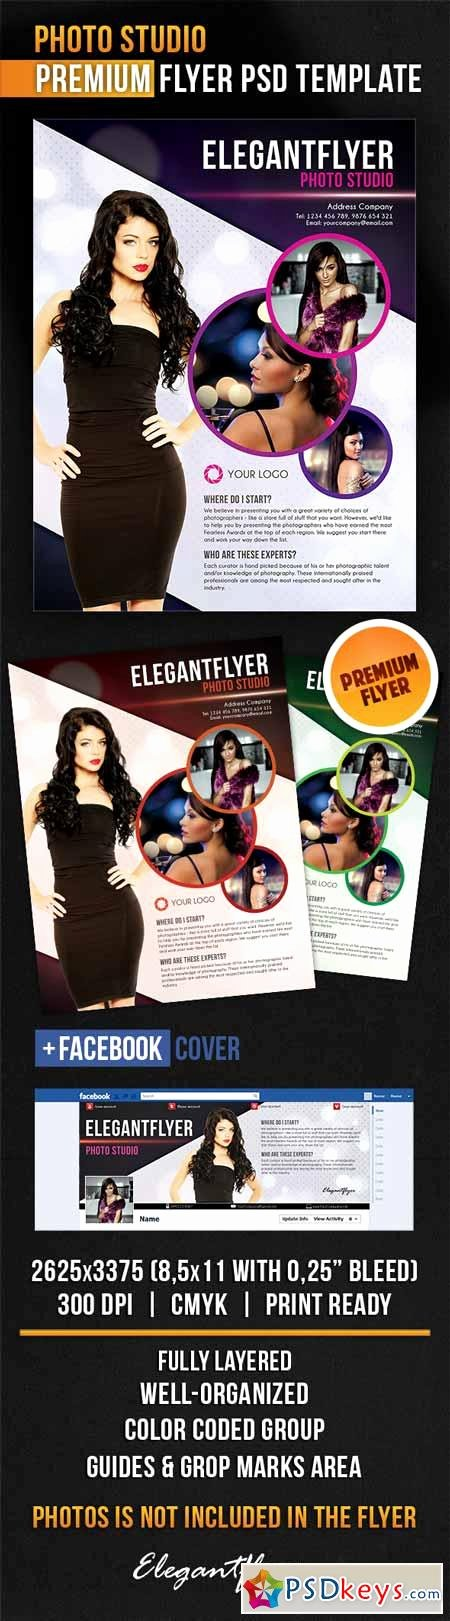 photo studio flyer psd template cover